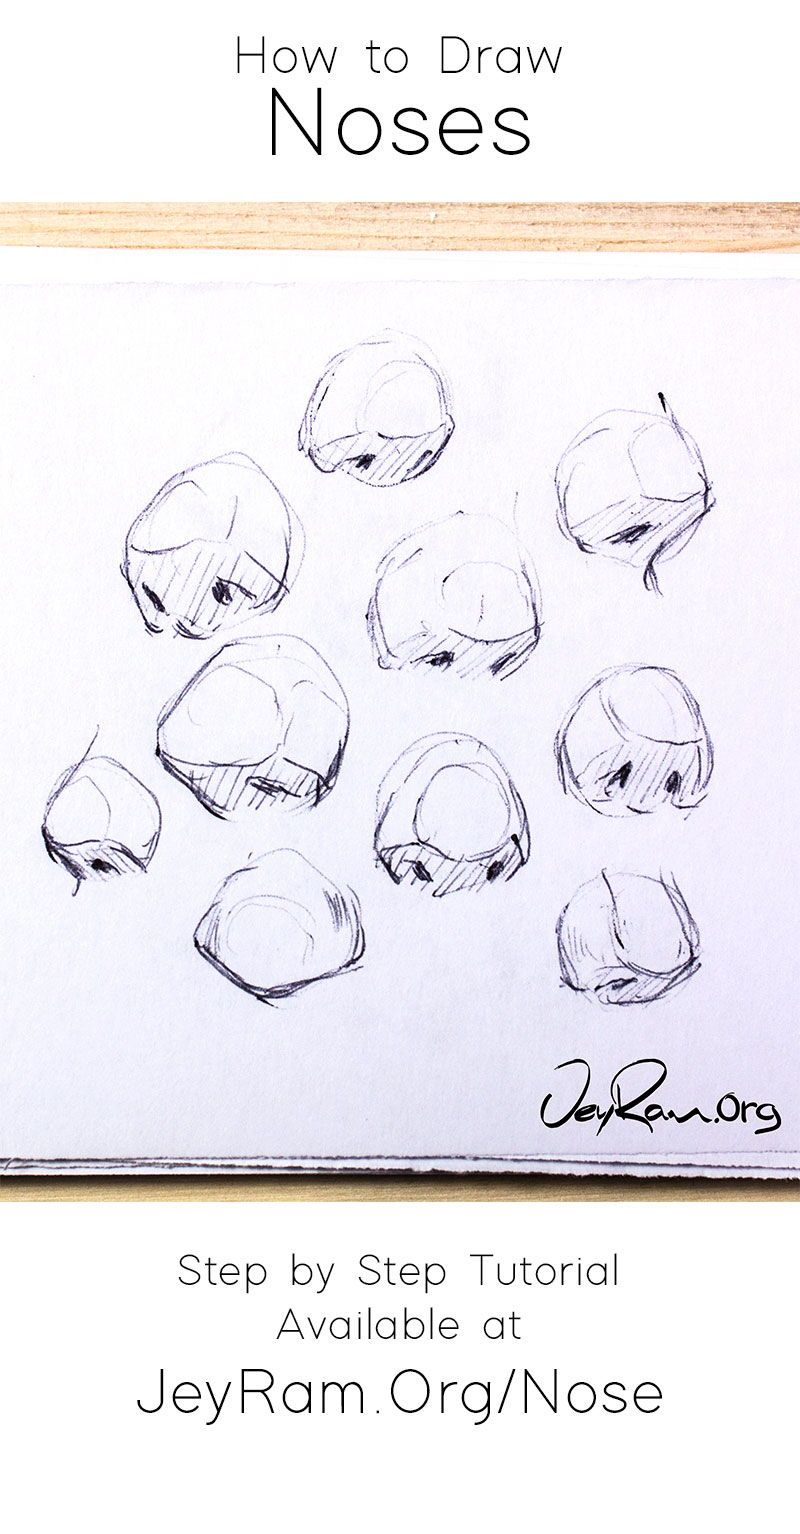 Learn how to draw simple noses with this step by step